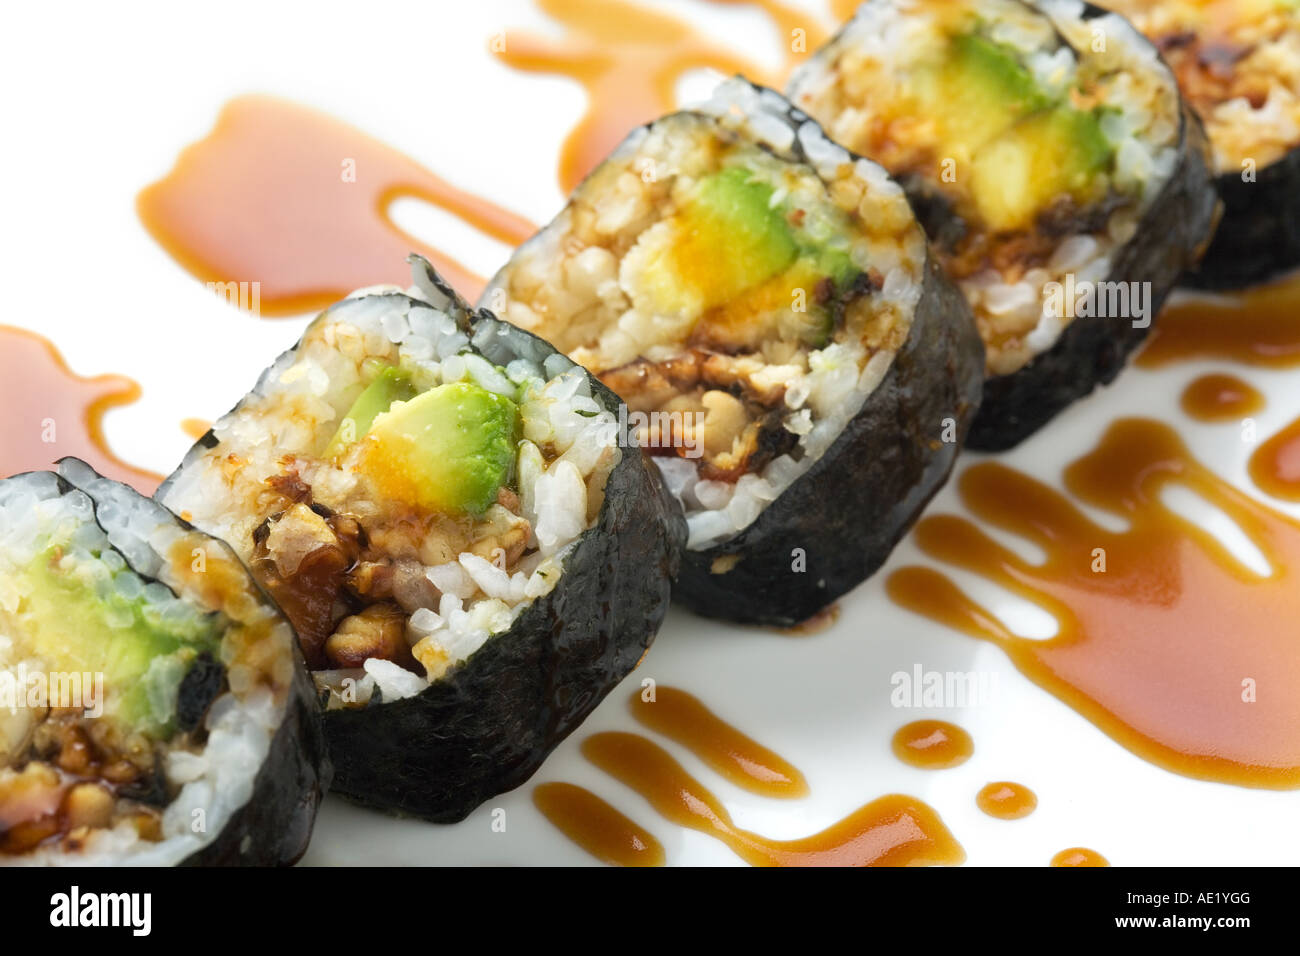 A Japanese sushi dish on a dish and adorned with sweet sauce. Stock Photo